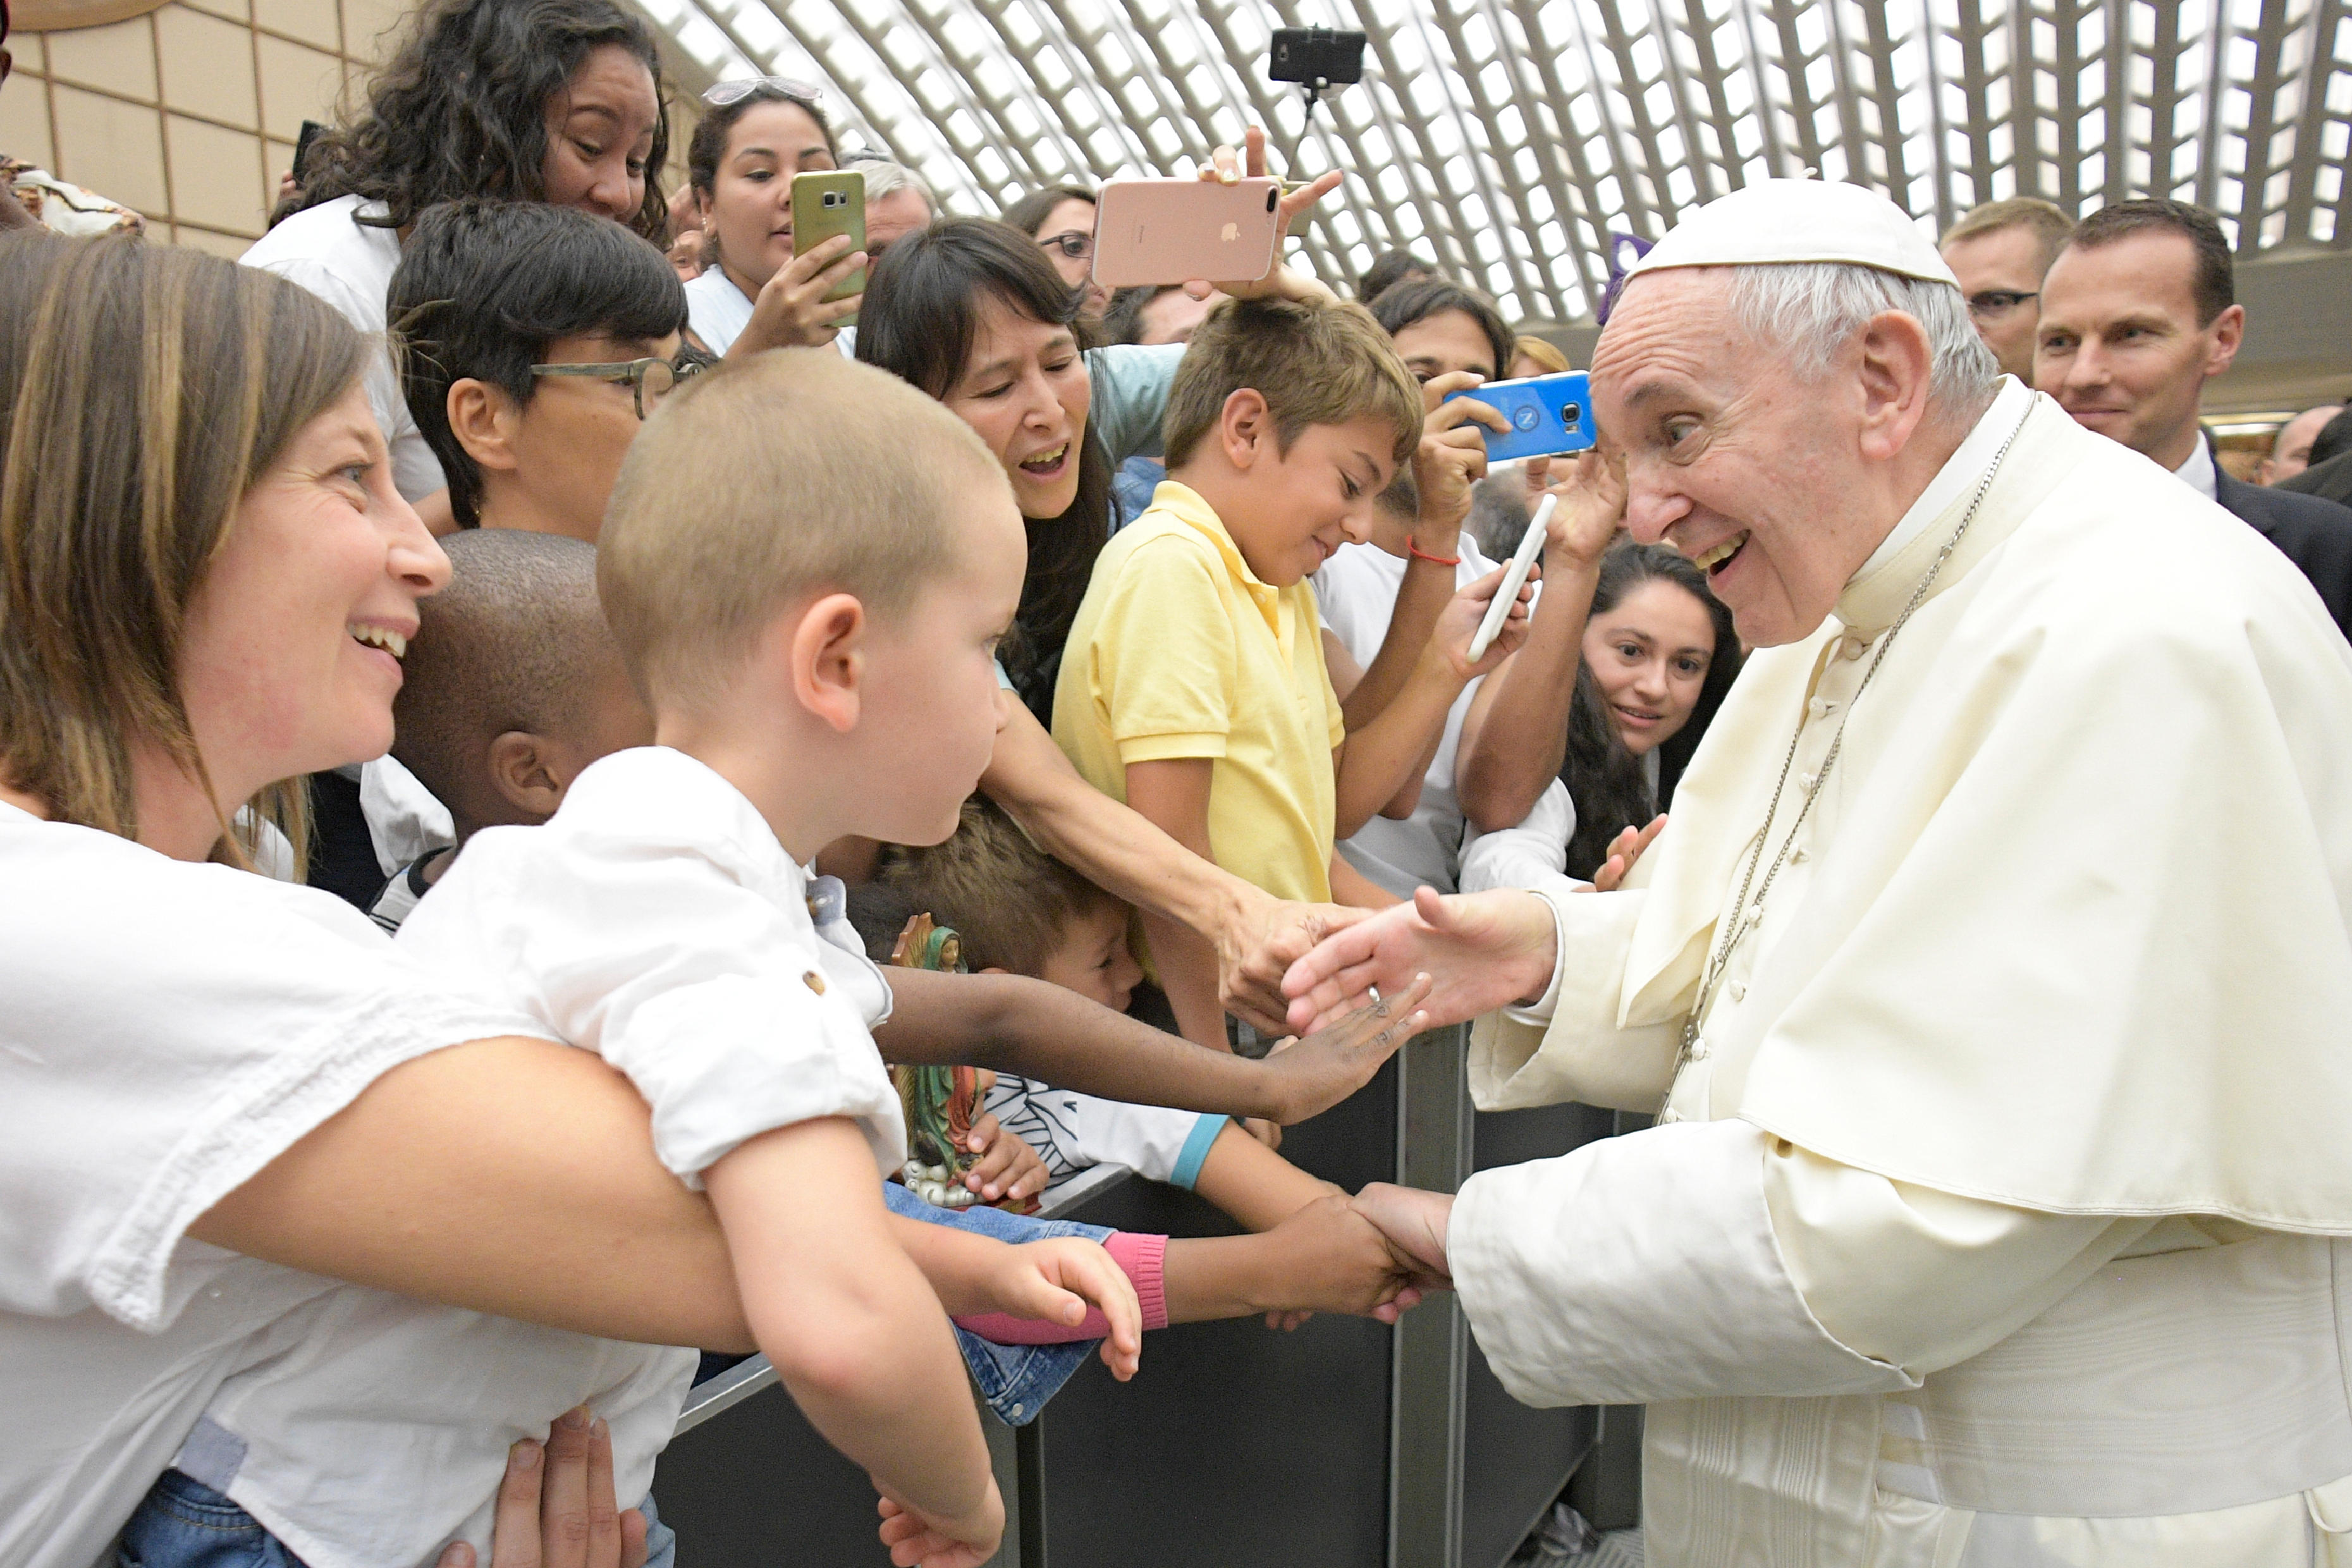 General Audience 23/08/2017 © L'Osservatore Romano